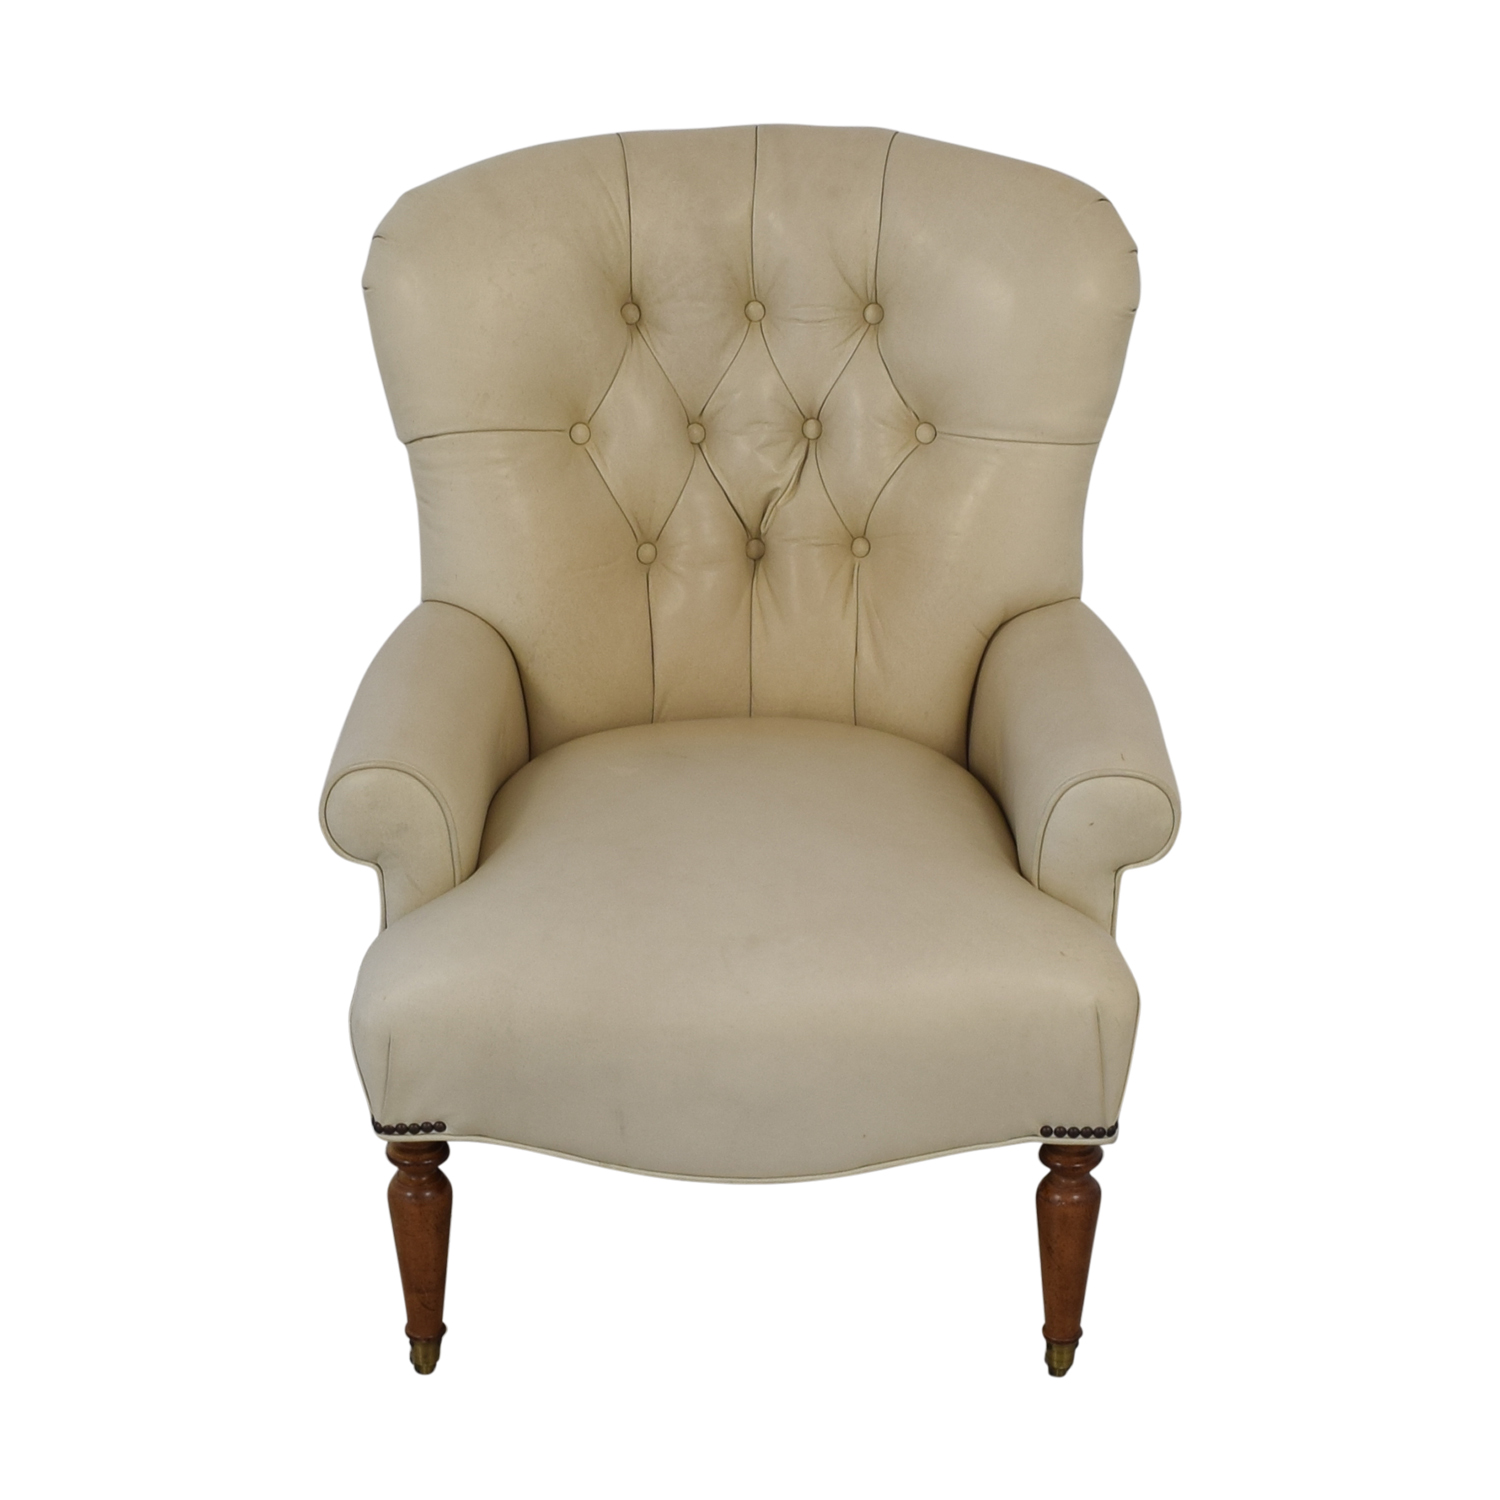 Tufted Accent Chair / Chairs